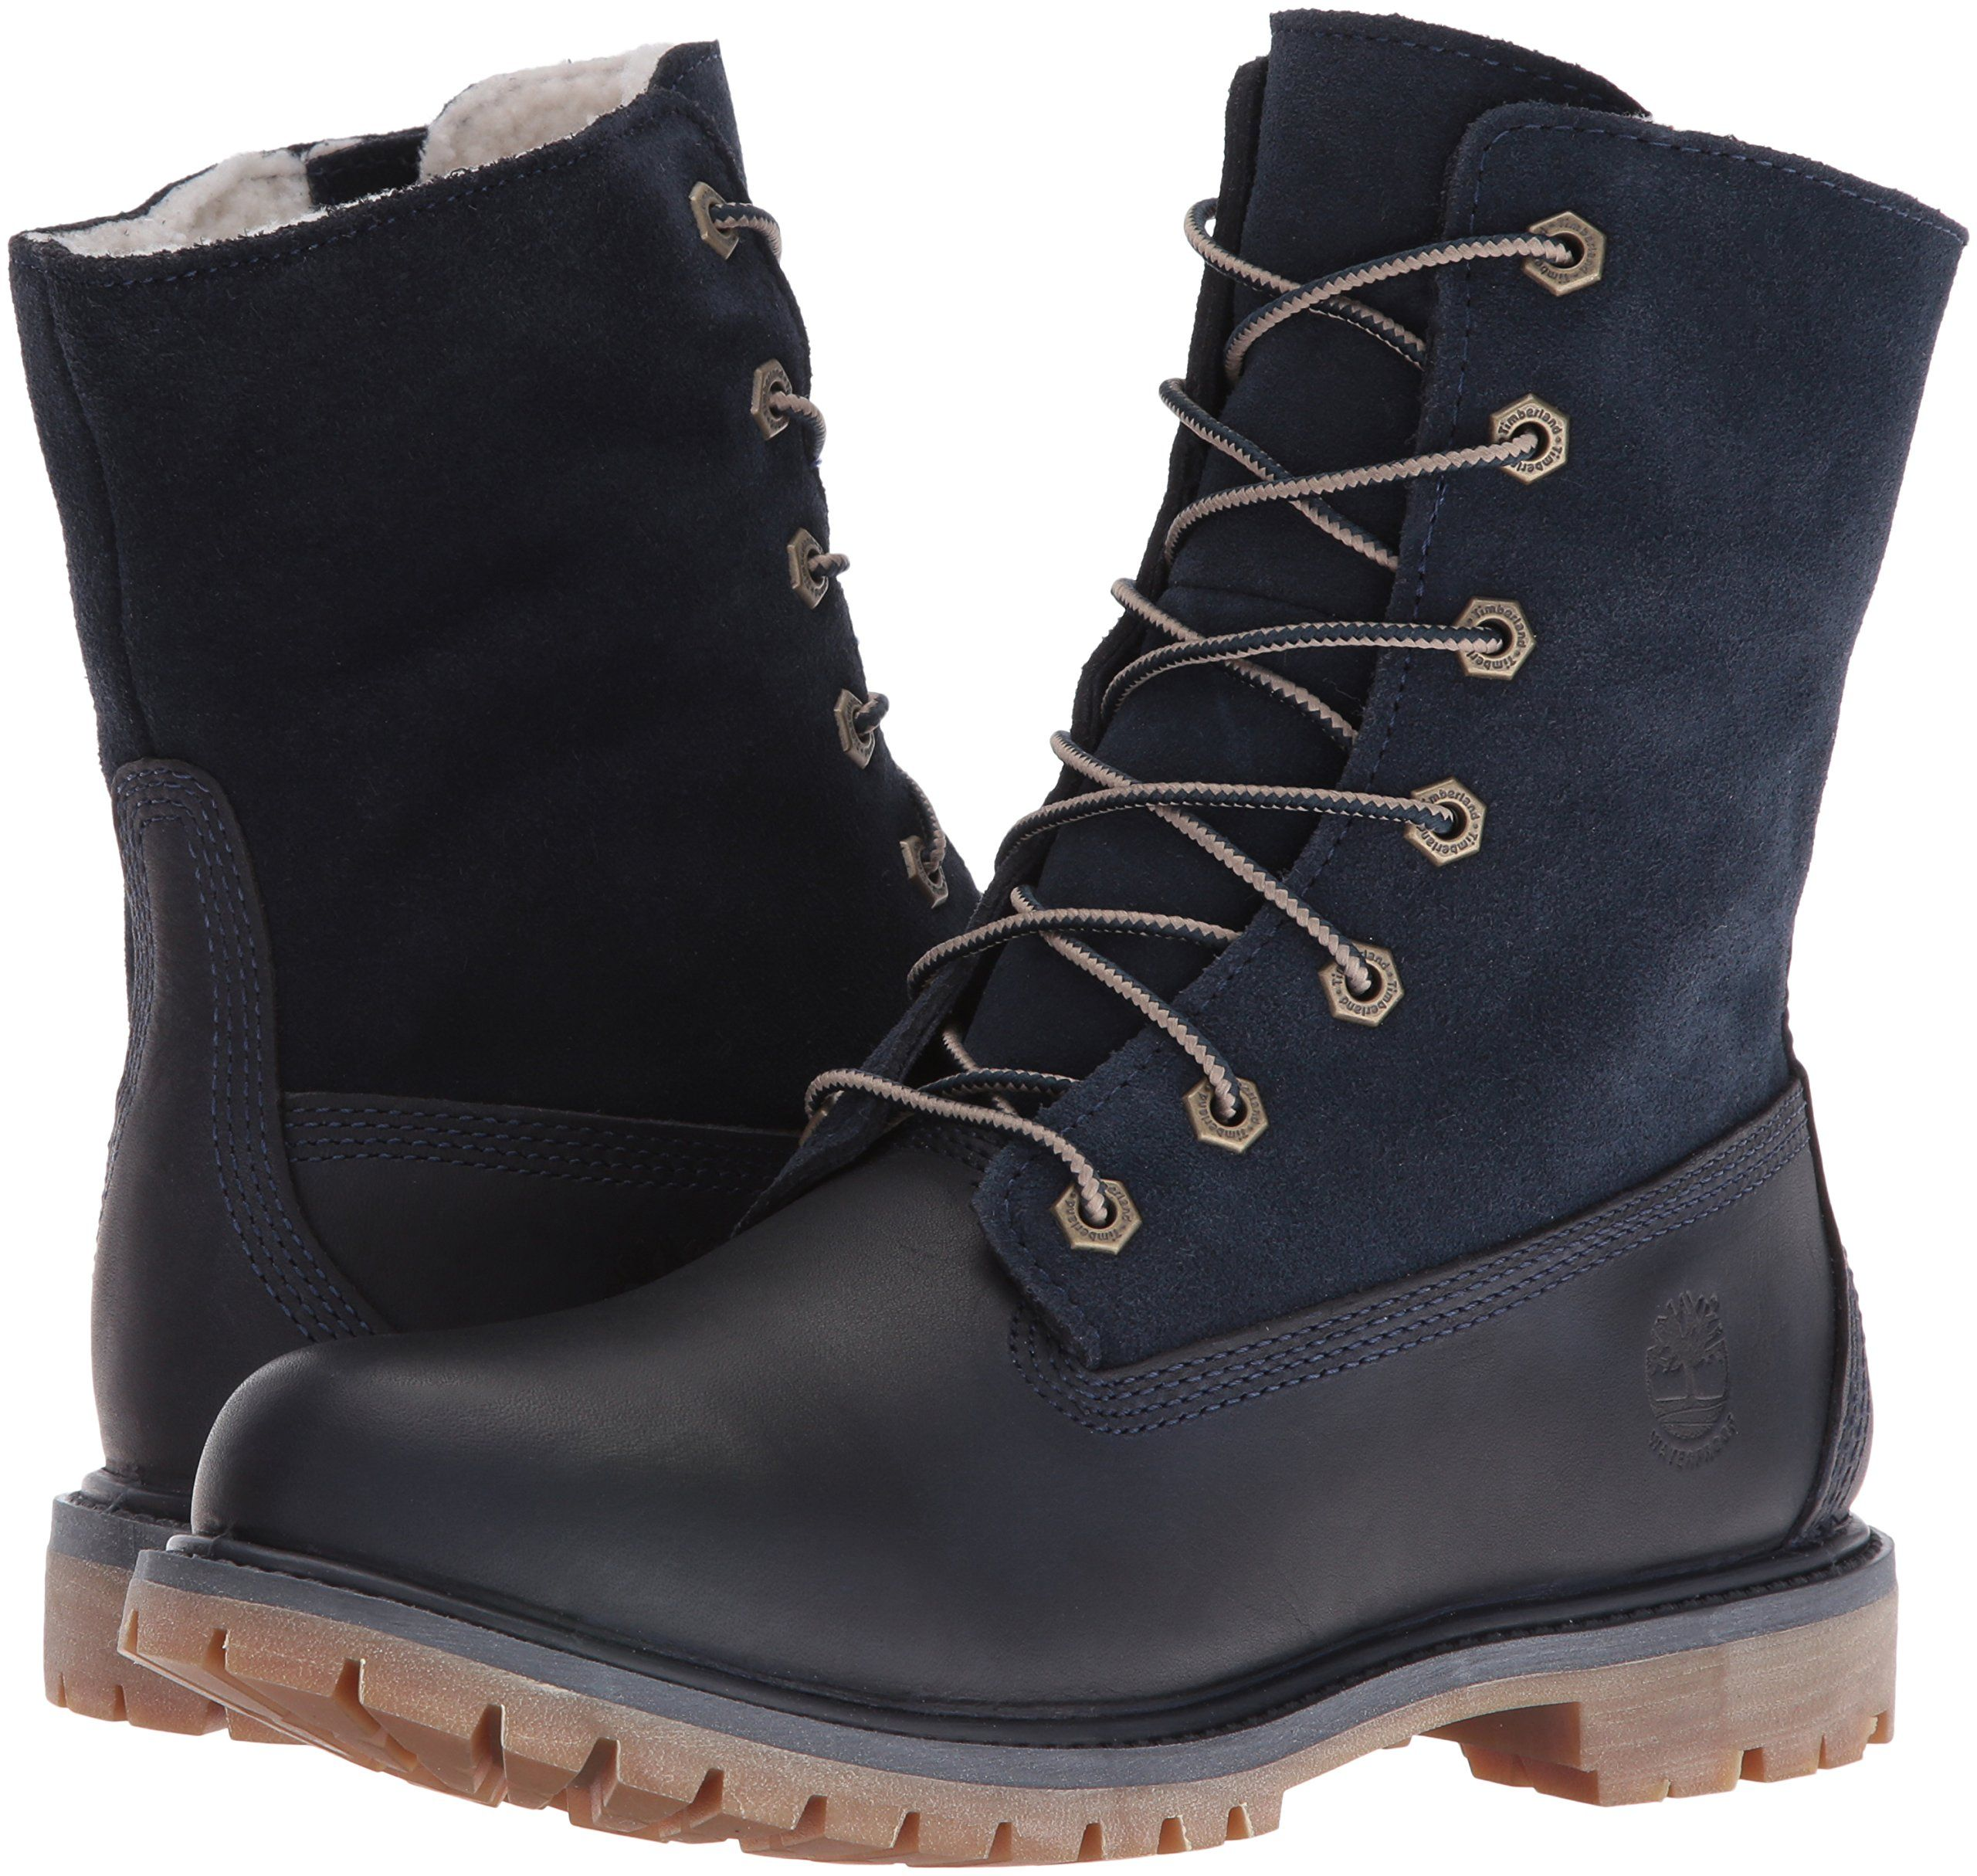 100% genuine wholesale outlet new collection Timberland Womens Authentics Teddy Fleece WP FoldDown Boot ...